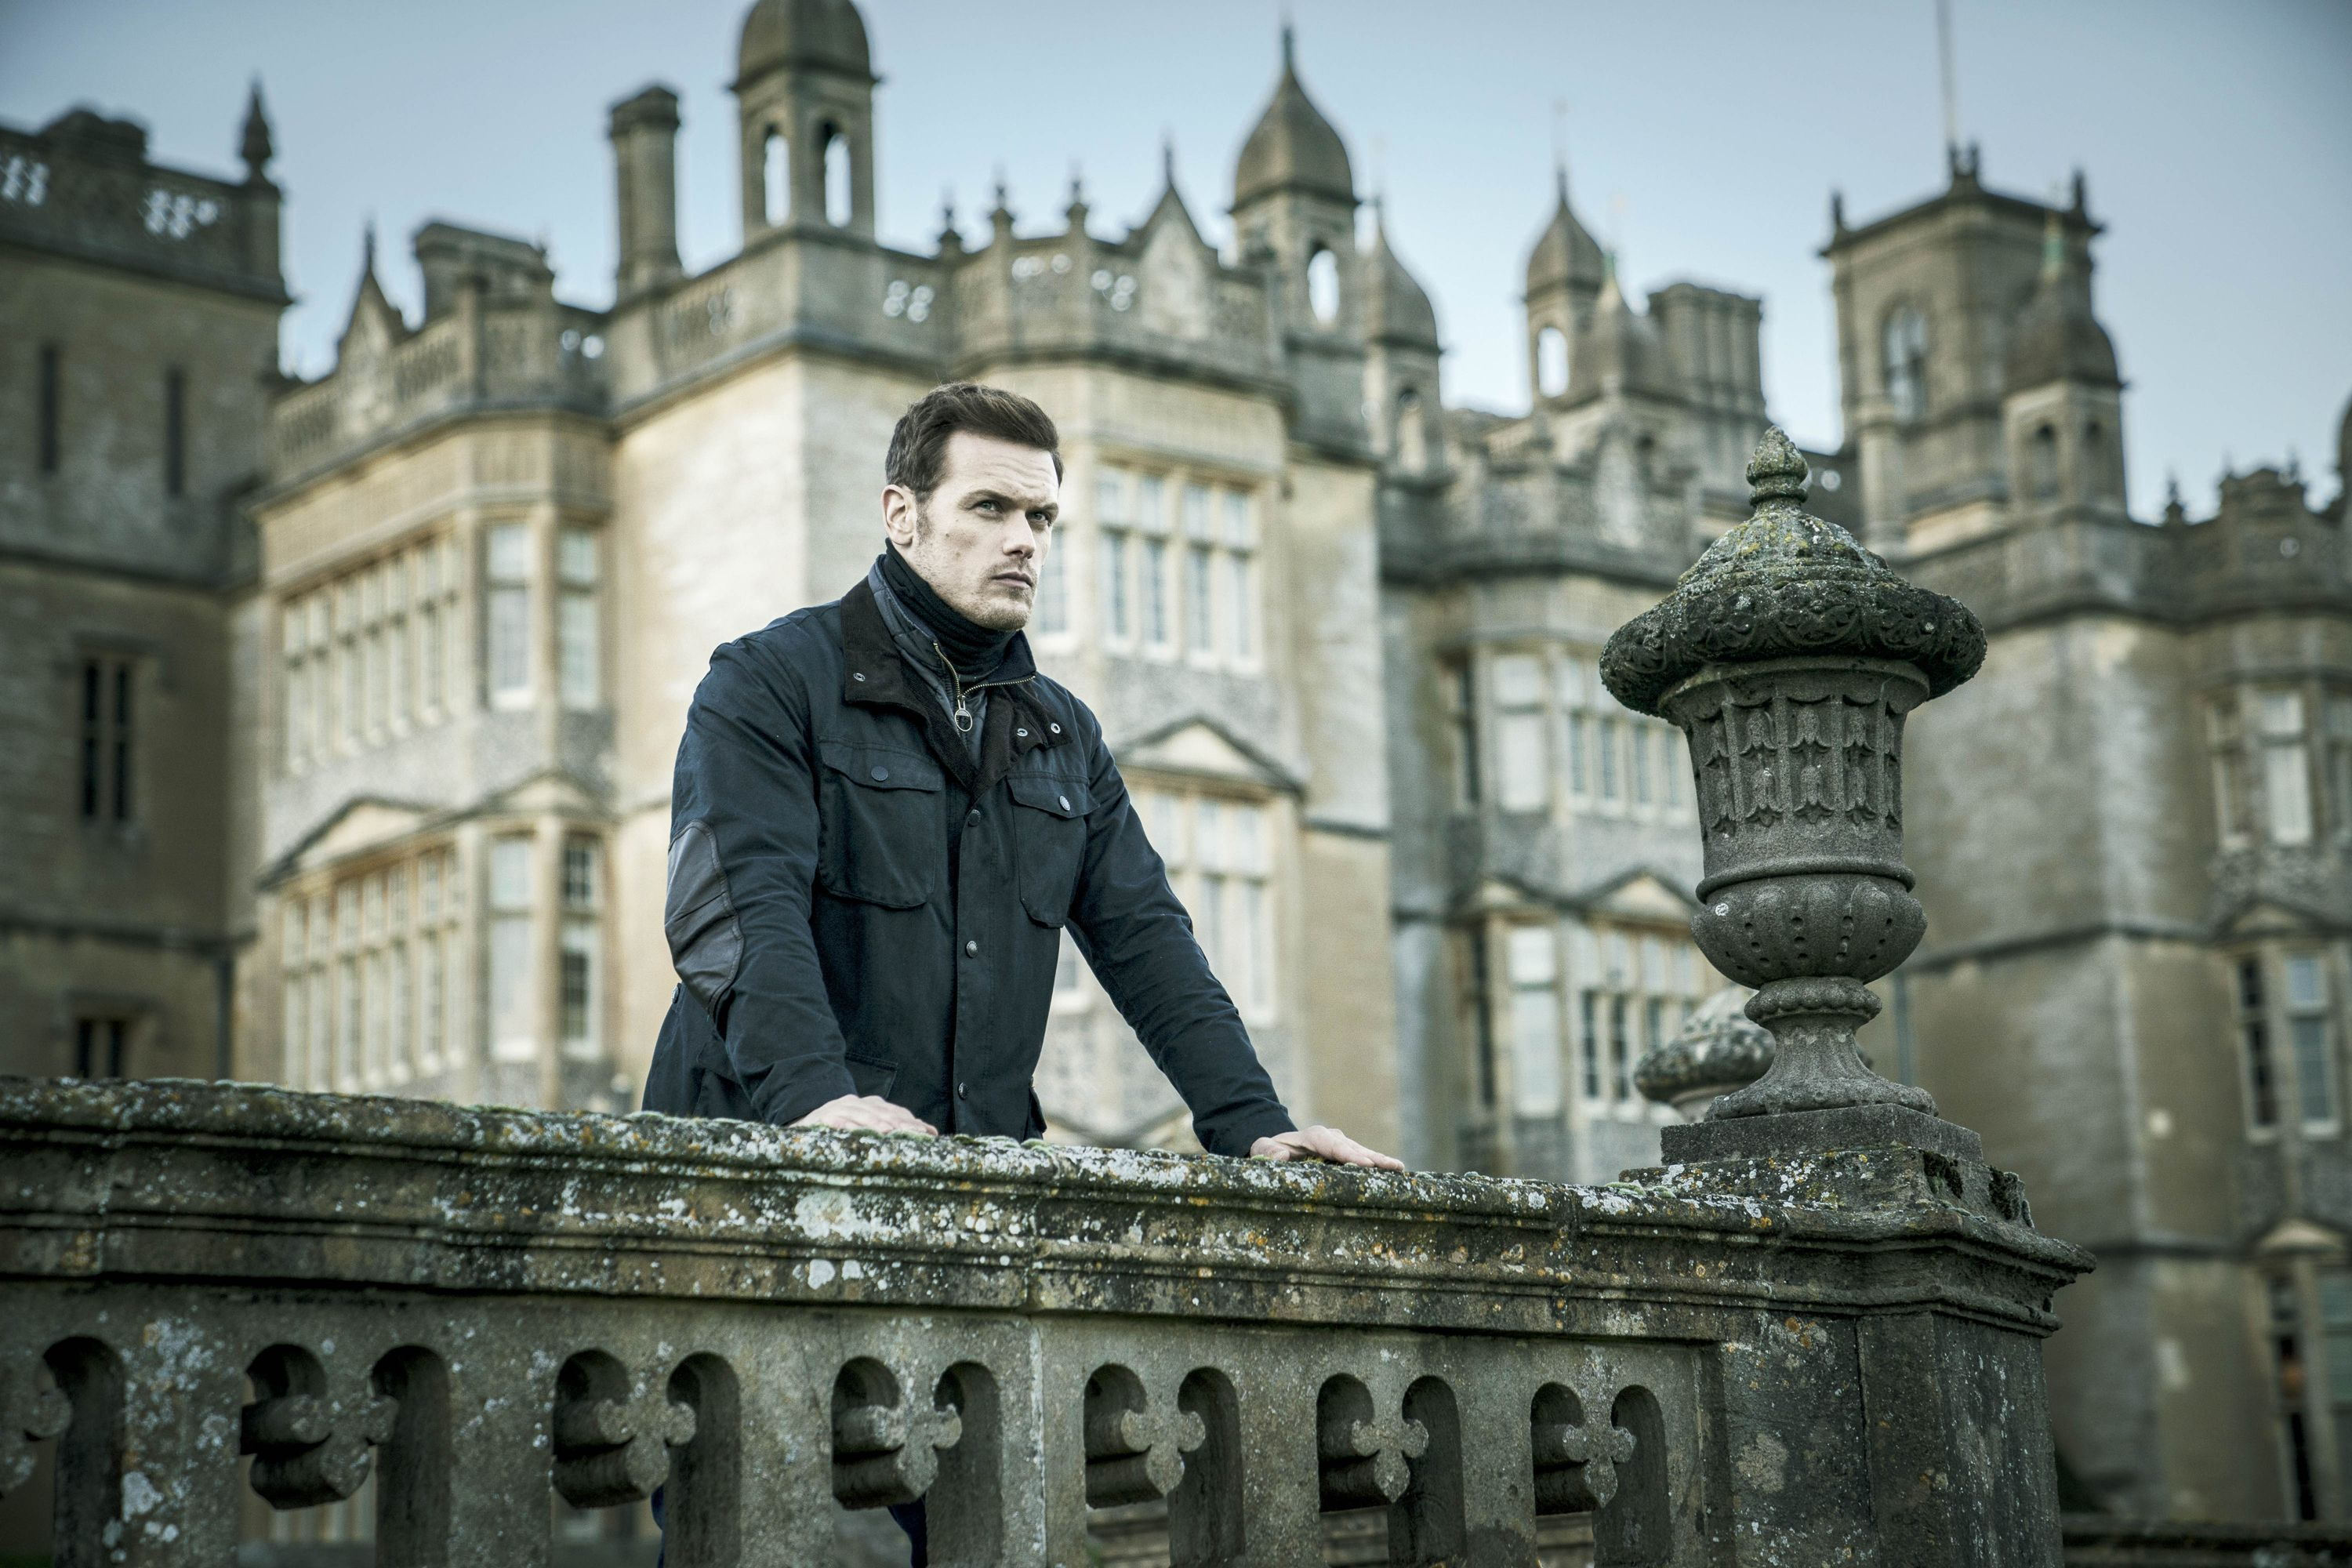 SAS Red Notice 2 - Sam Heughan addresses possibility of sequel